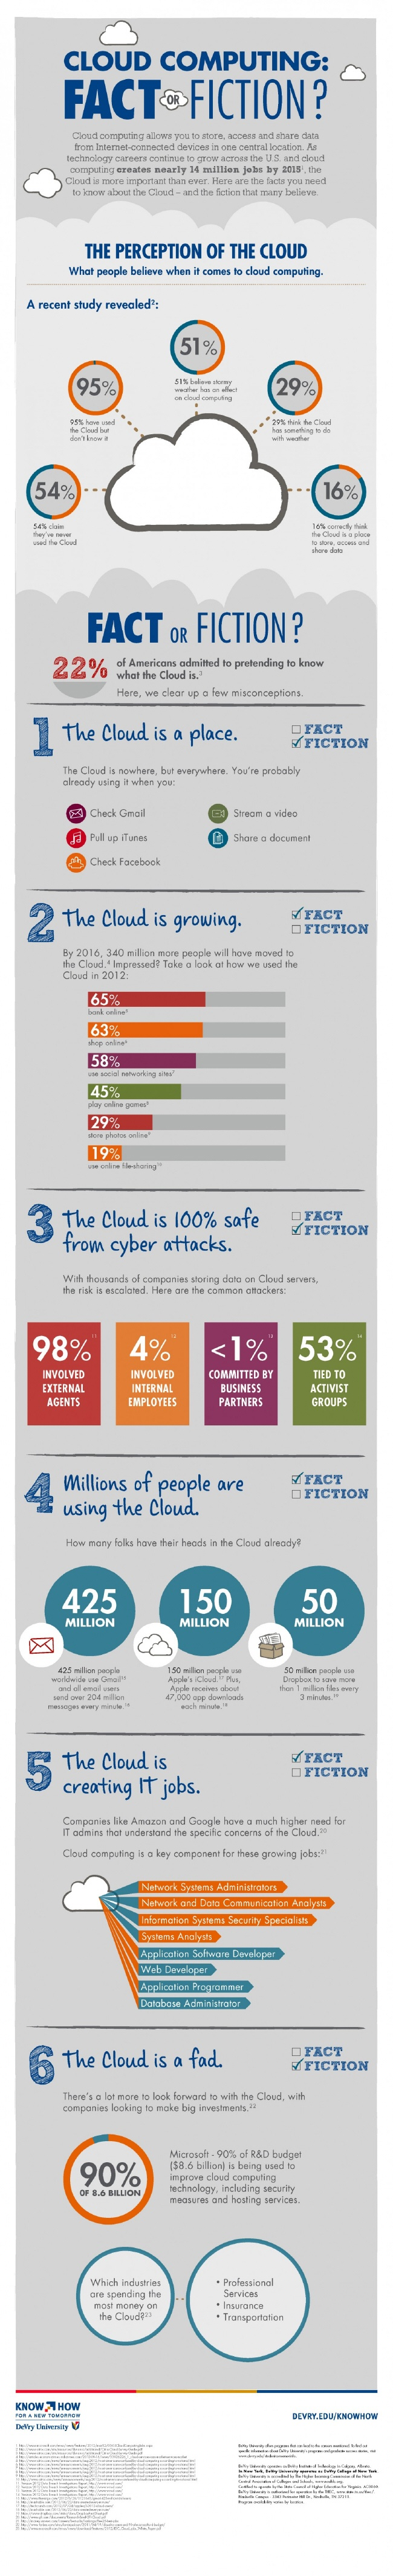 The #Cloud: fact or fiction #SMM